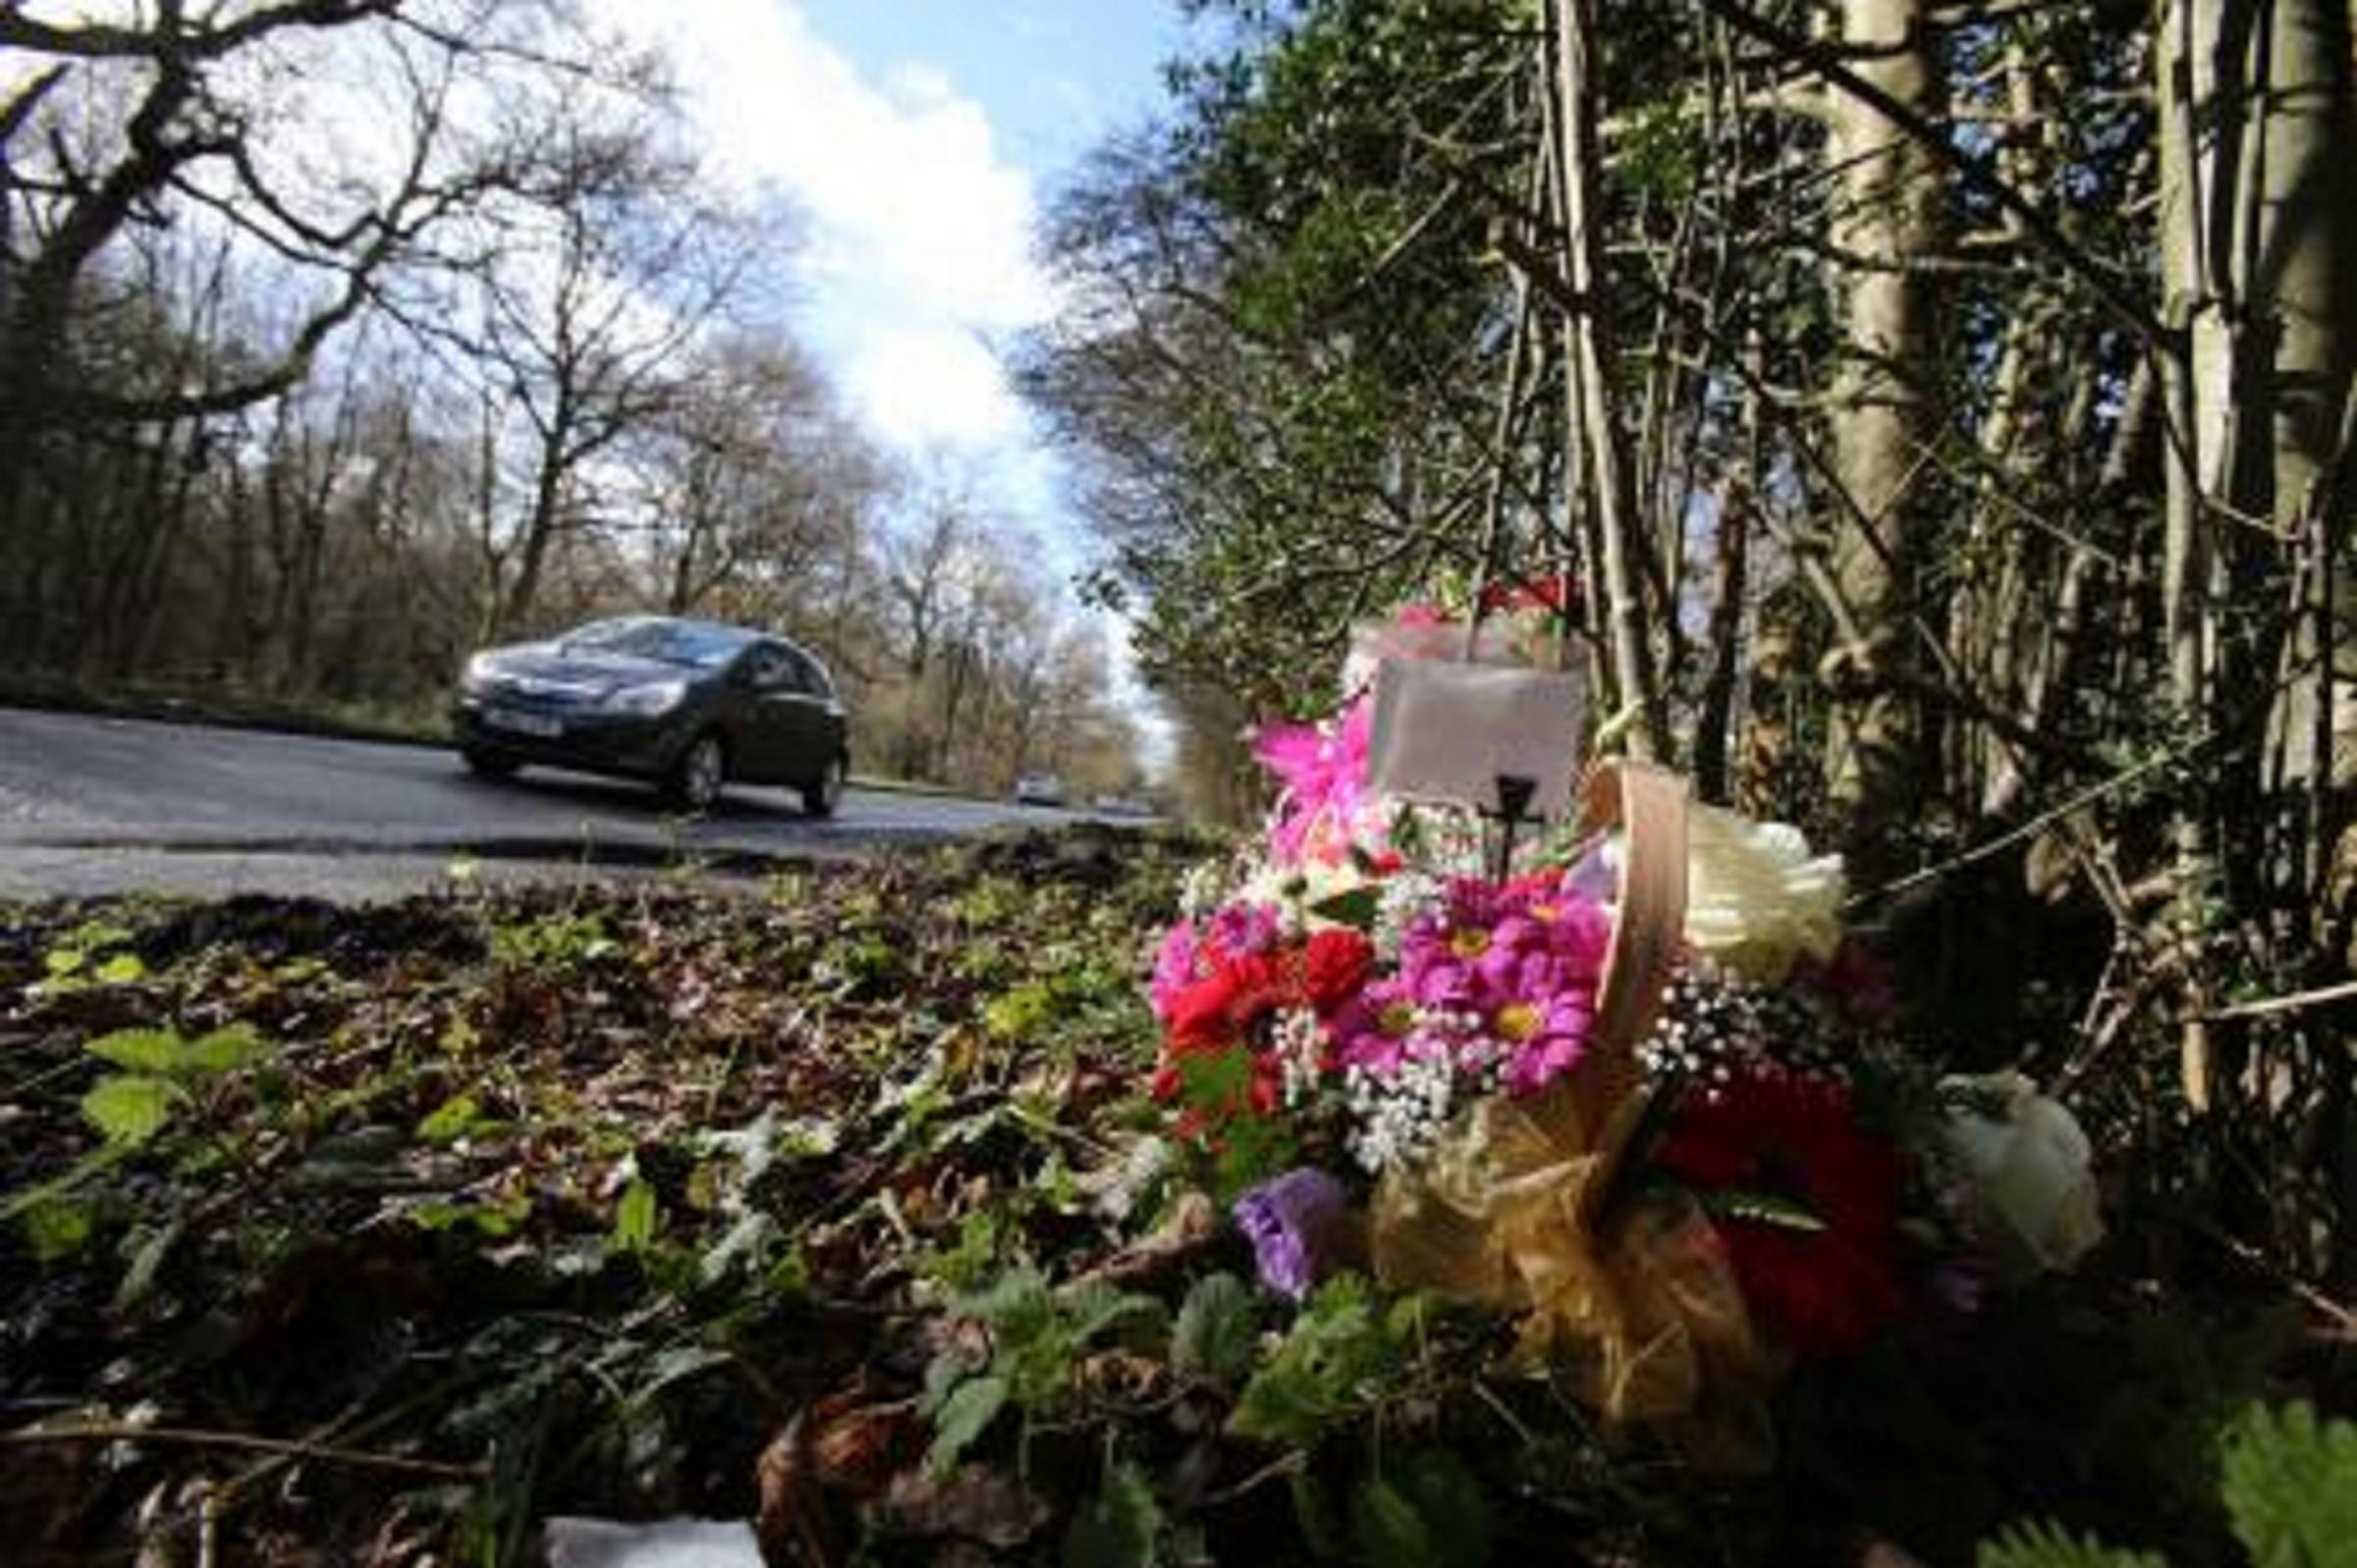 Tributes to Mandeep Padda in Epping New Road